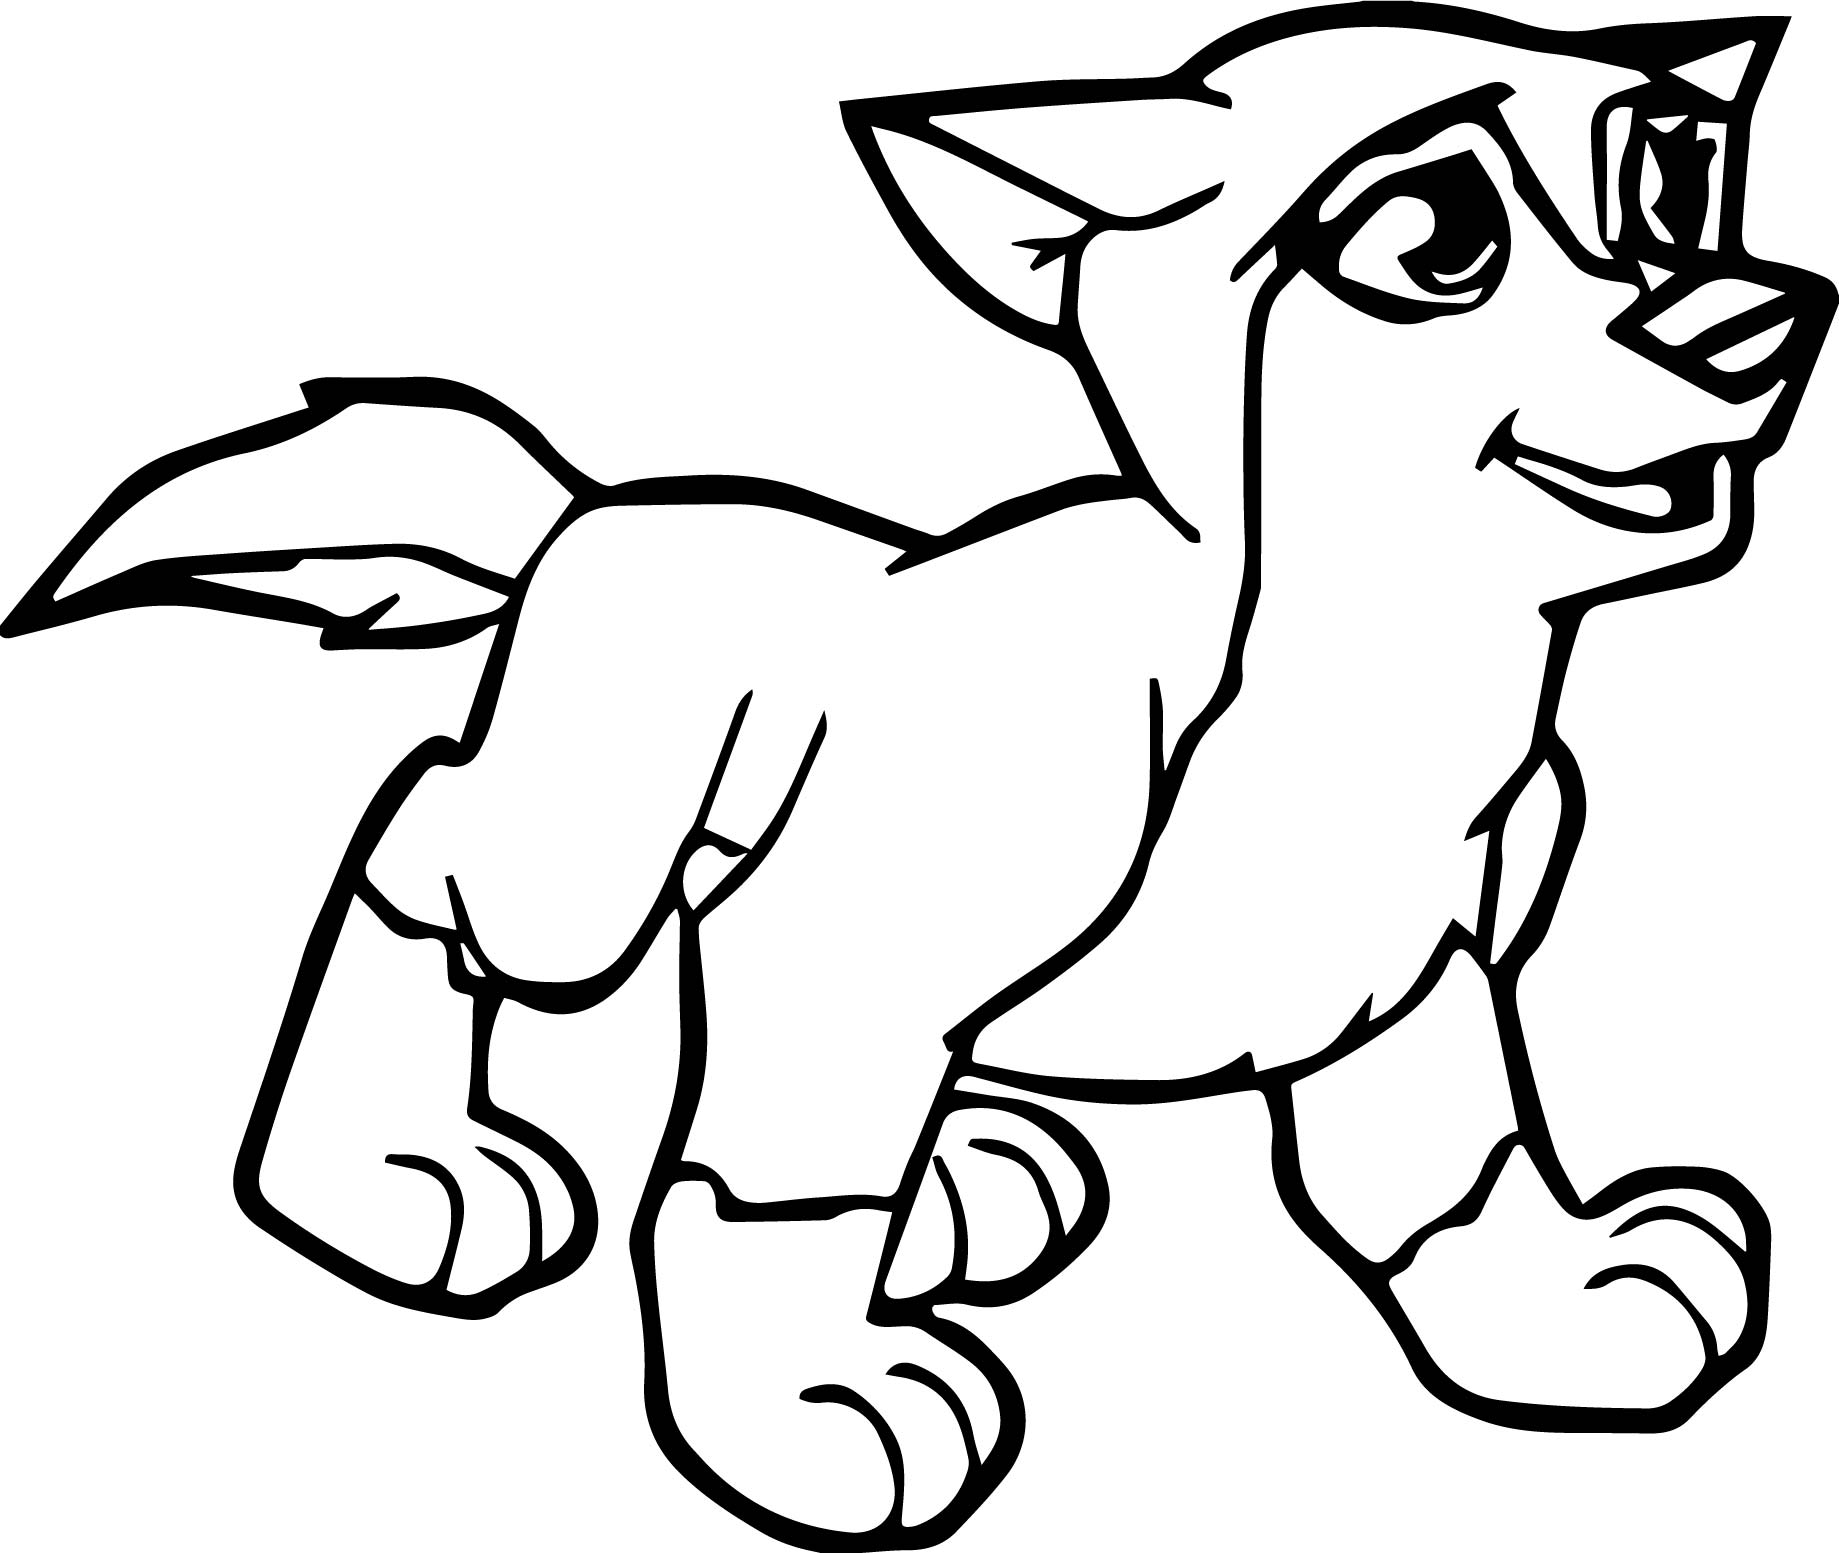 28 Alpha And Omega Coloring Pages To Print Free Alpha And Omega Coloring Pages To Print